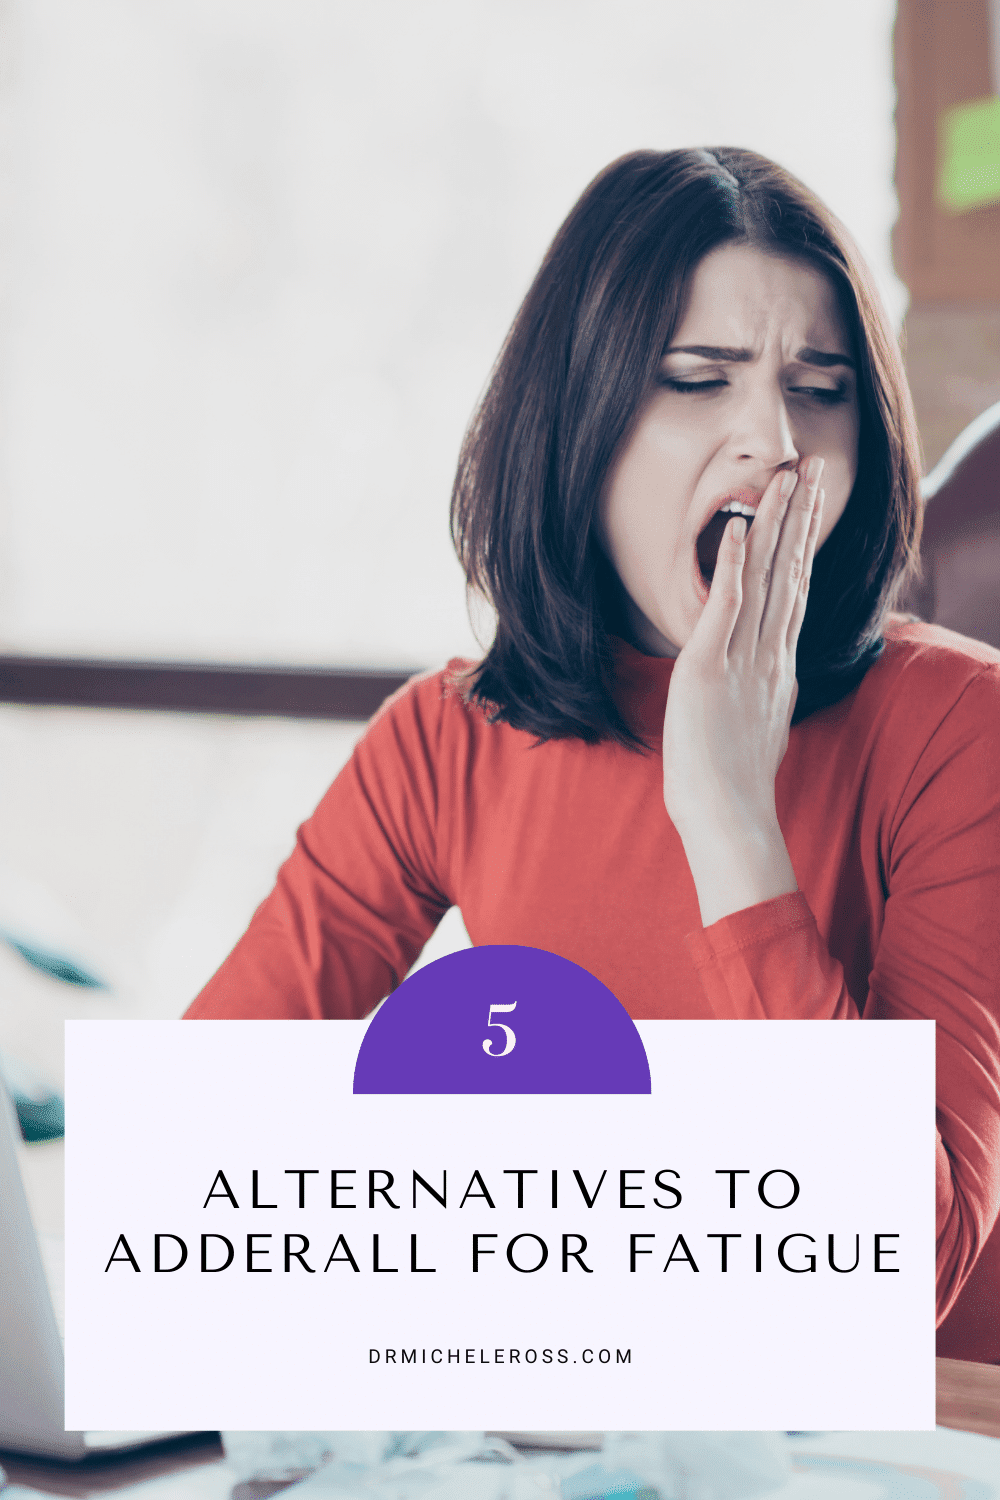 woman yawning needs adderall for fatigue